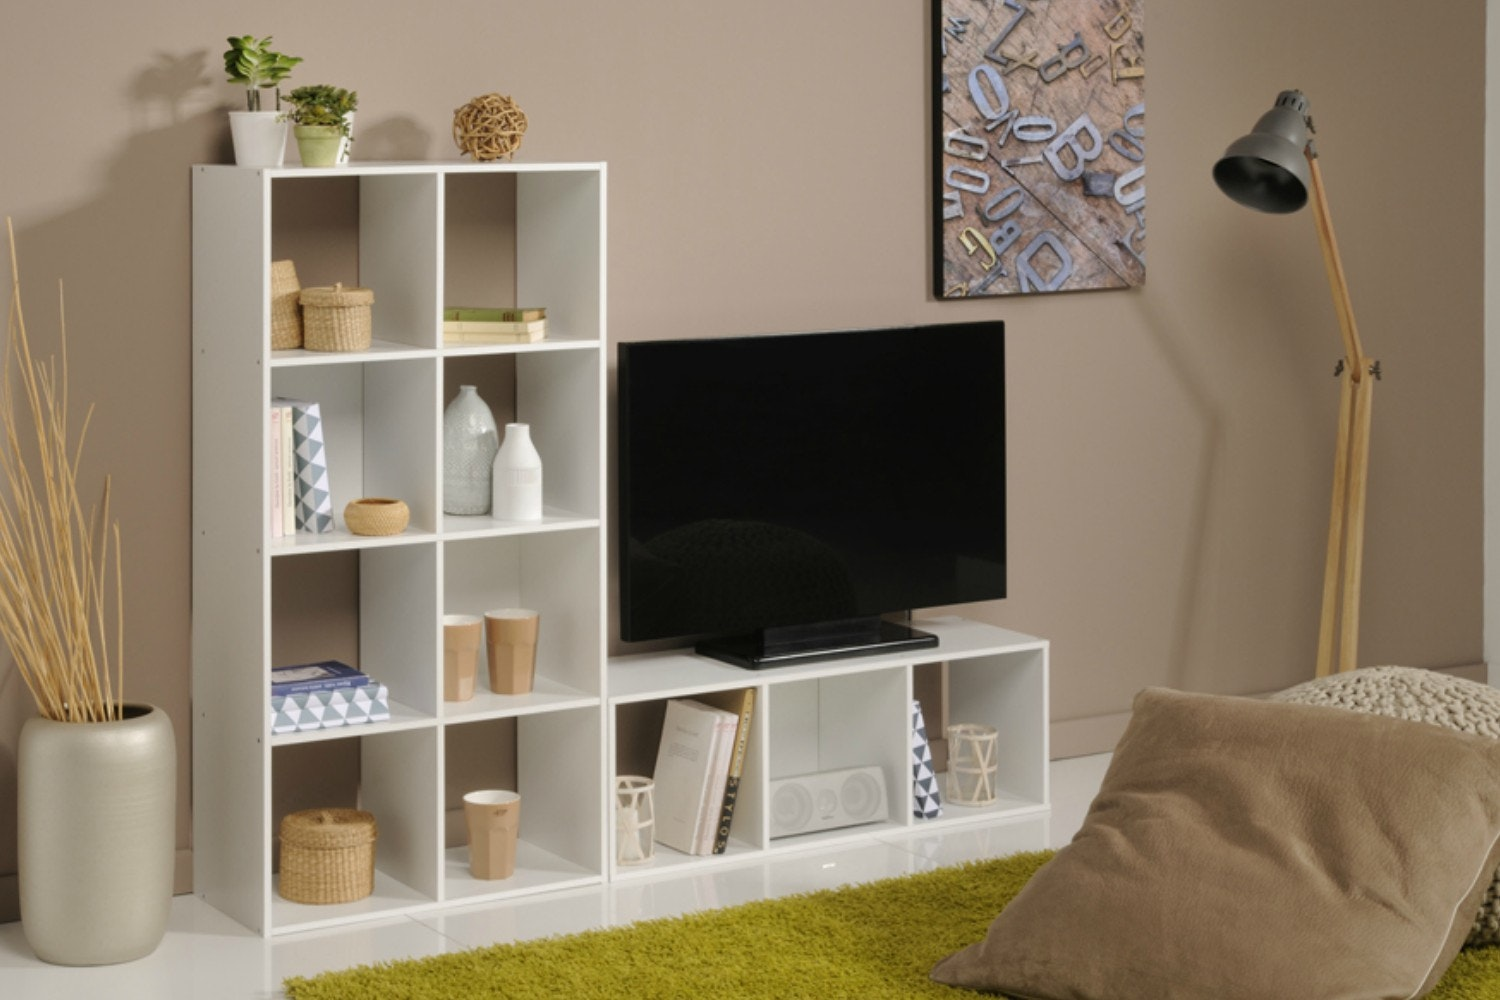 Kubikub 8 Cube Column Storage | White